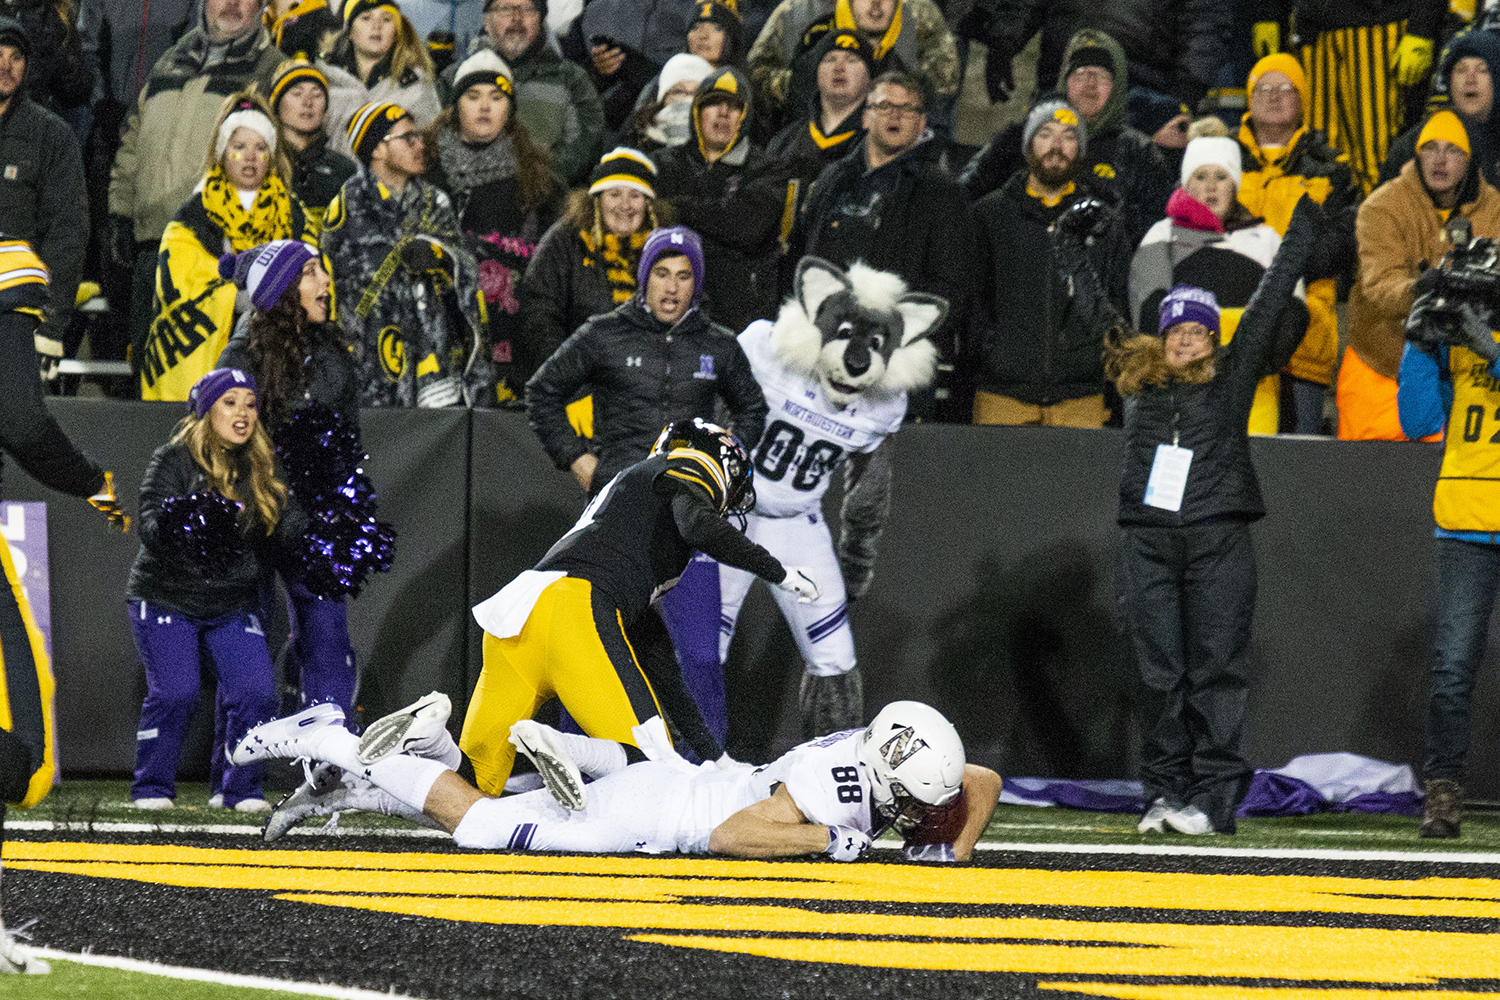 Northwestern+wide+receiver+Bennnet+Skowronek+catches+a+touchdown+pass+during+the+Iowa%2FNorthwestern+game+at+Kinnick+Stadium+on+Saturday%2C+November+10%2C+2018.+The+Wildcats+defeated+the+Hawkeyes+14-10.+%28Katina+Zentz%2FThe+Daily+Iowan%29